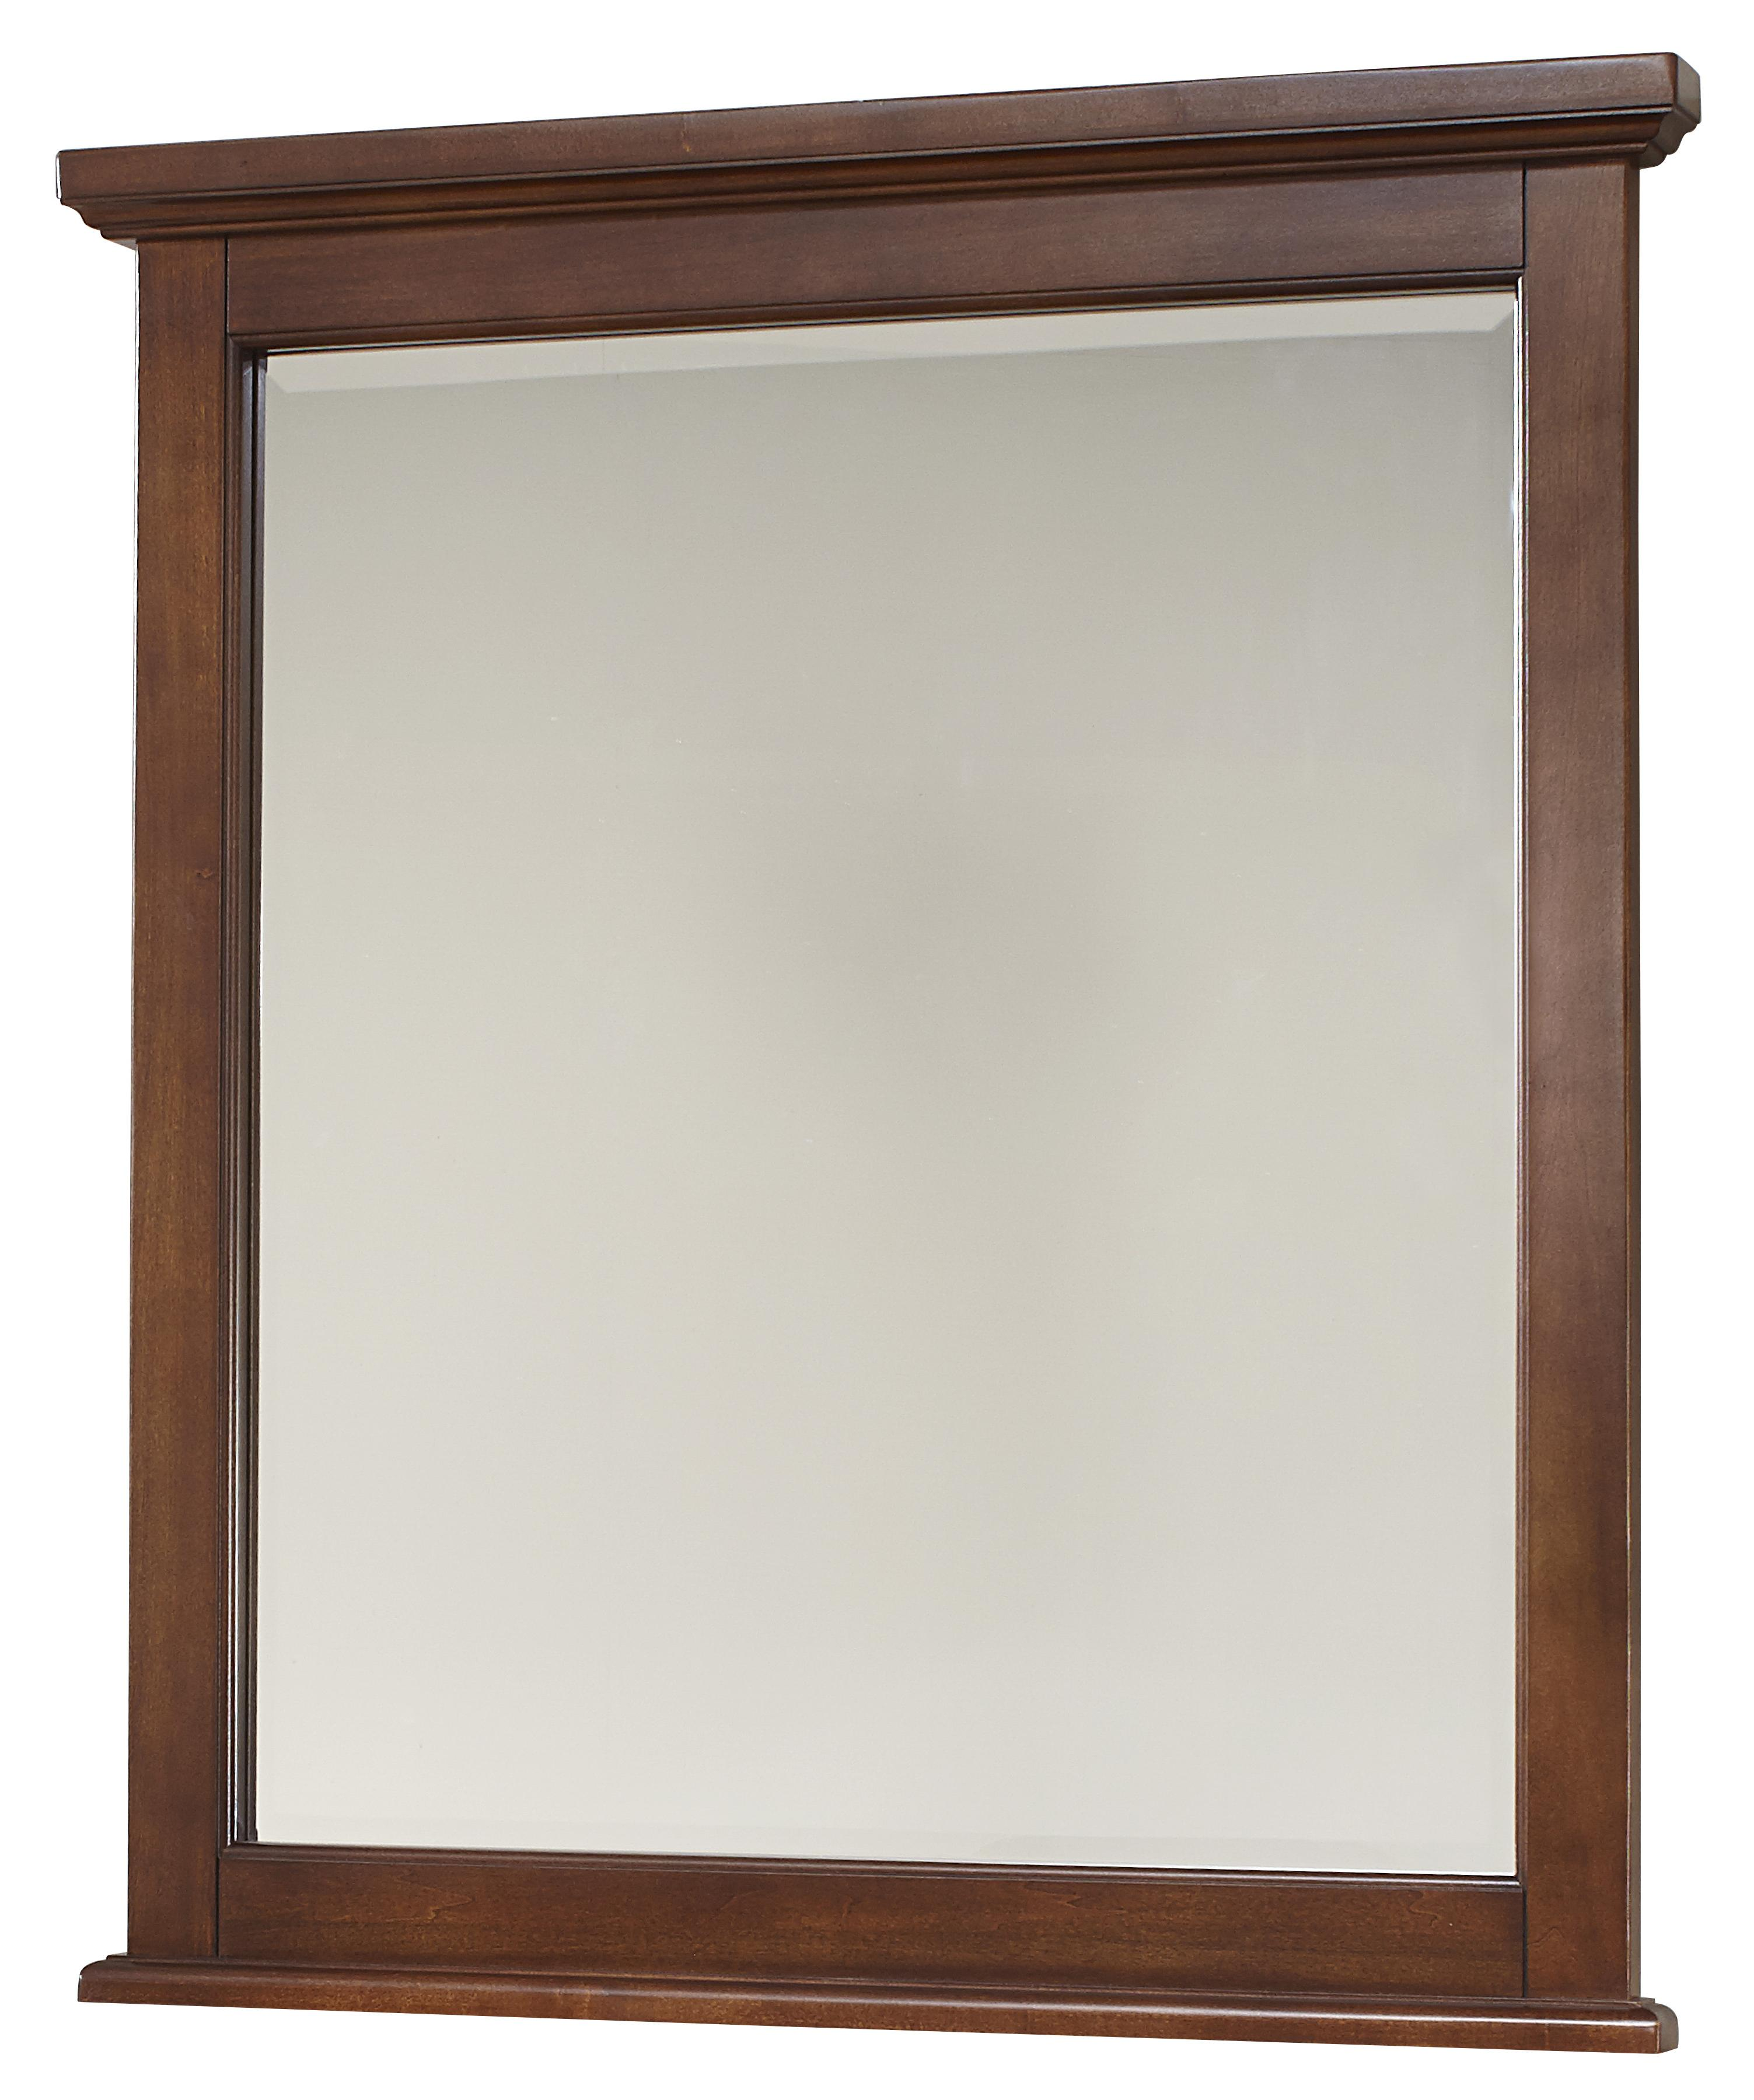 Bunkhouse Small Landscape Mirror by Vaughan-Bassett at Crowley Furniture & Mattress